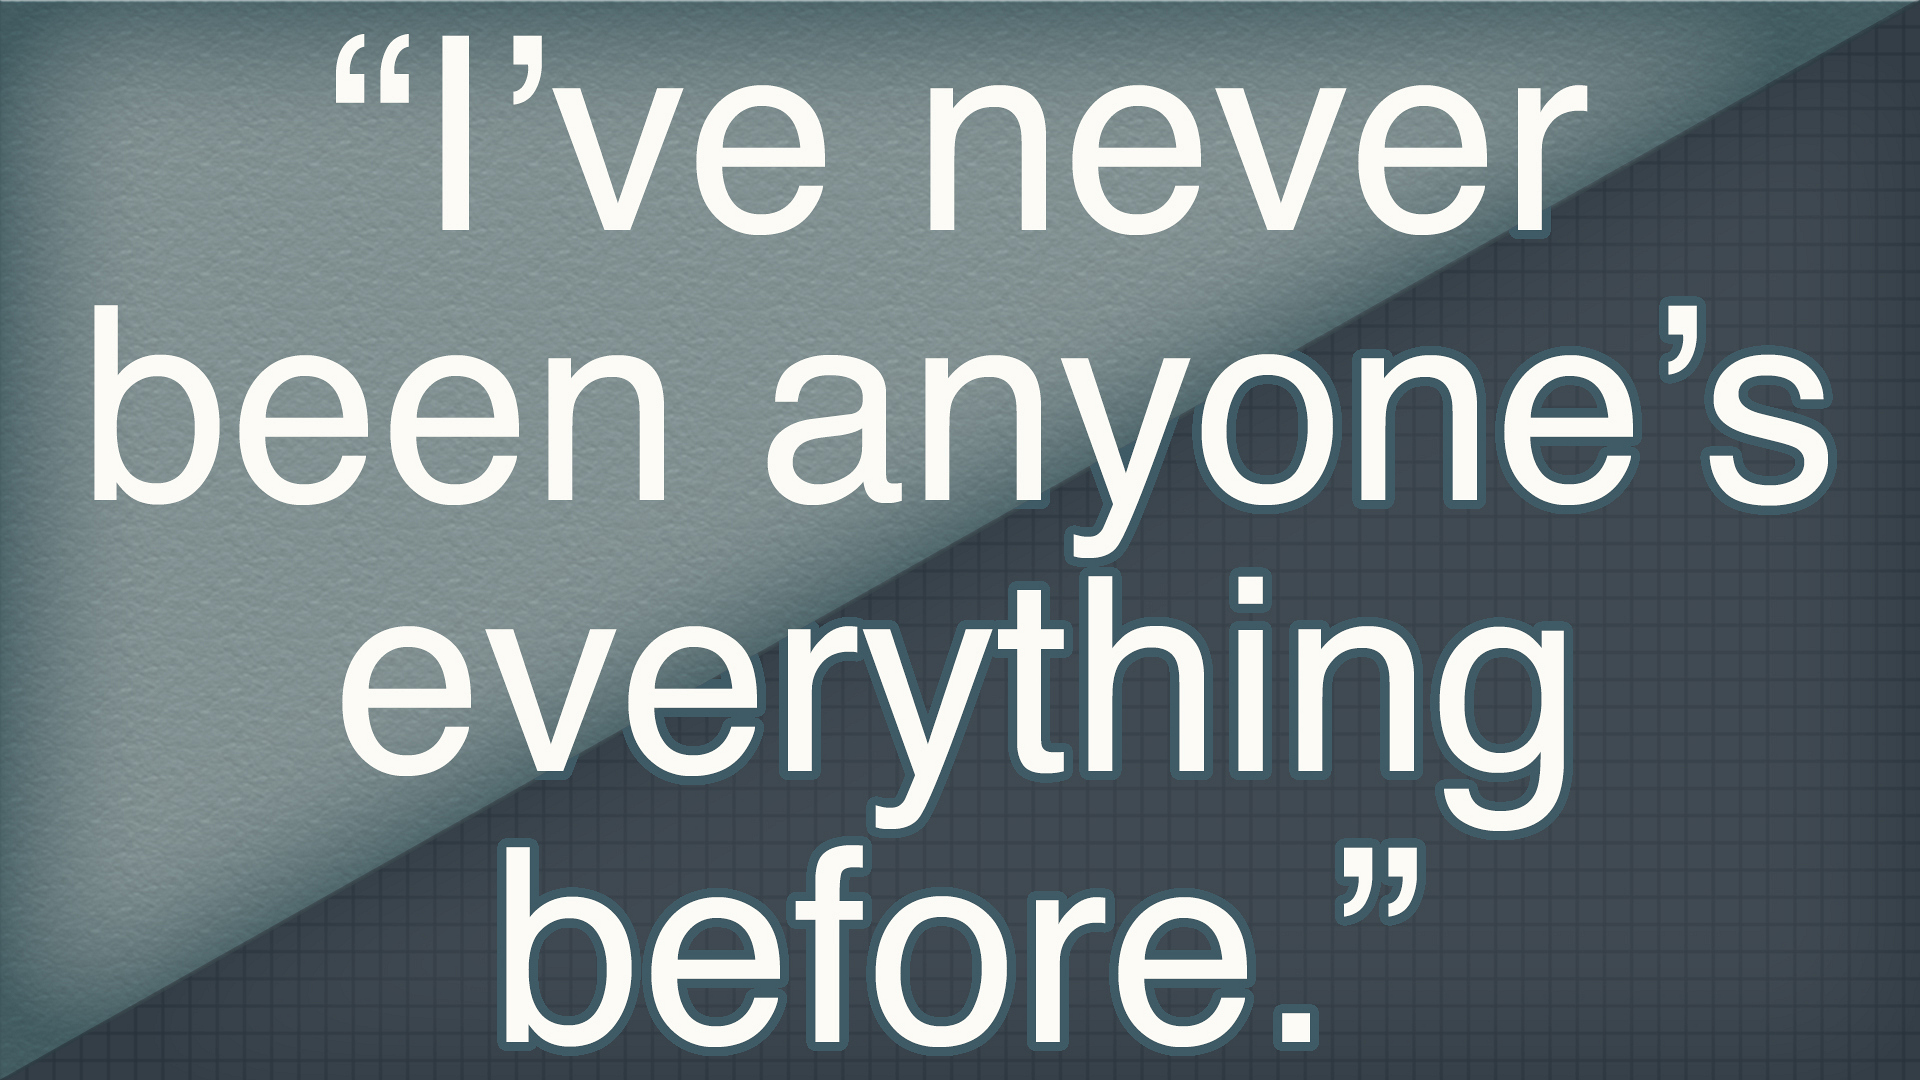 """I've never been anyone's everything before."""